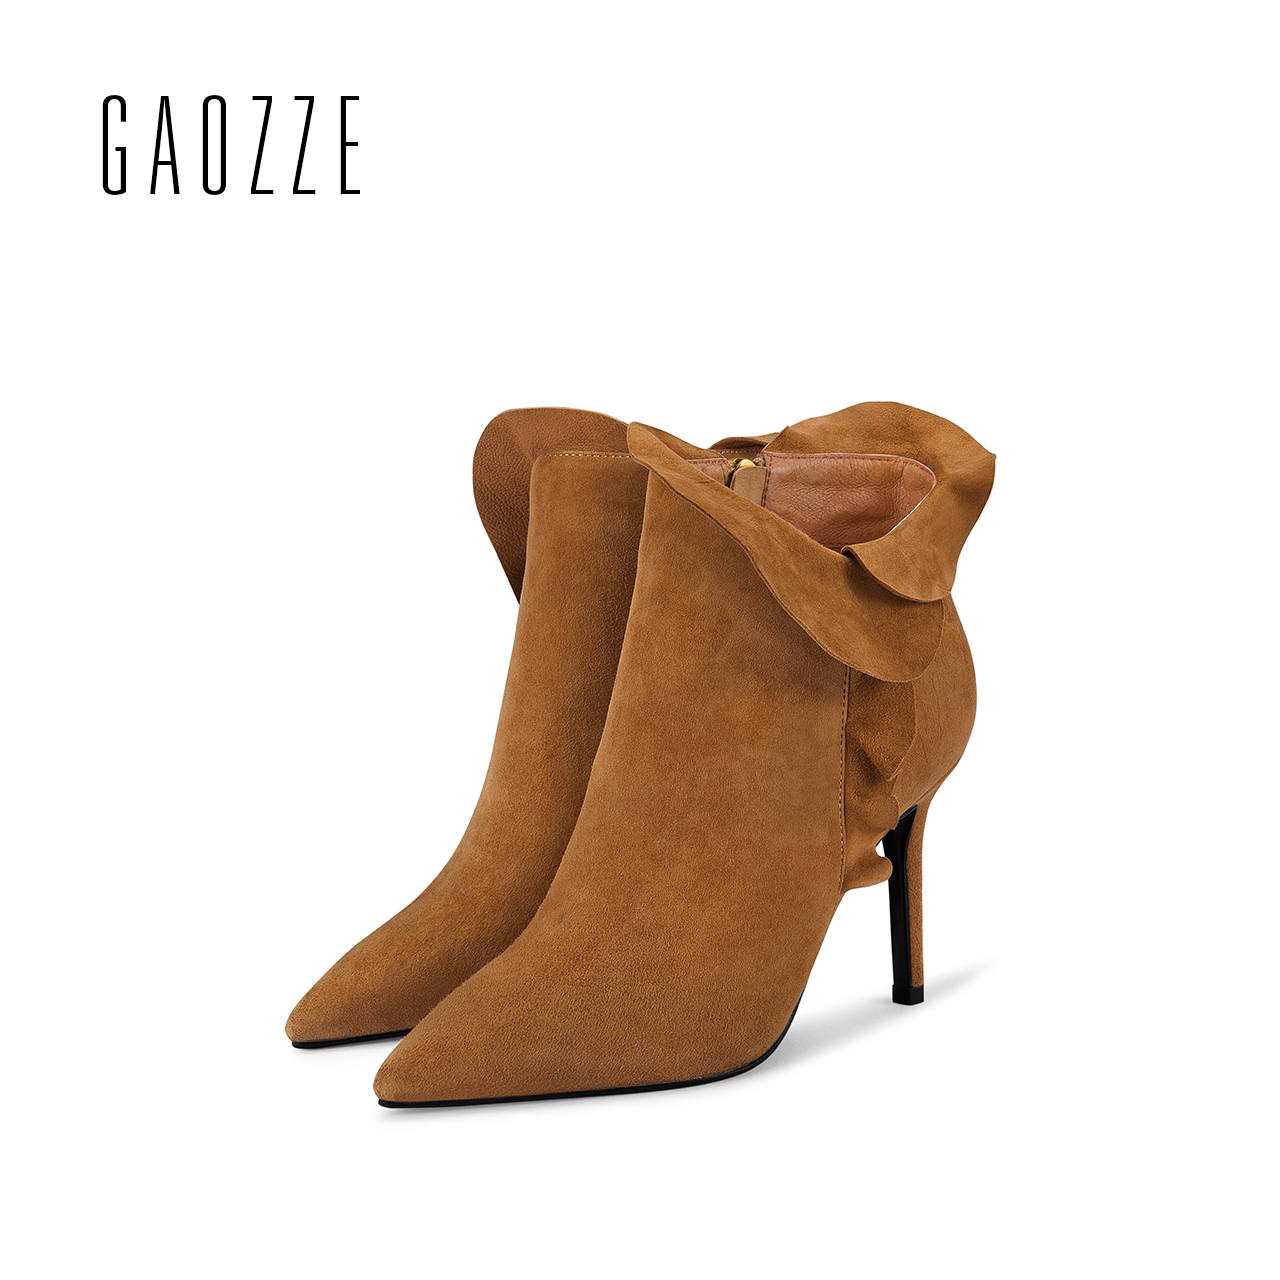 GAOZZE sexy pointed side zipper boots women fashion female sheep suede leather high heel ankle boots 2017 autumn new gaozze suede leather women ankle boots female pointed black side zipper ankle boots heels shoes women 2017 autumn new